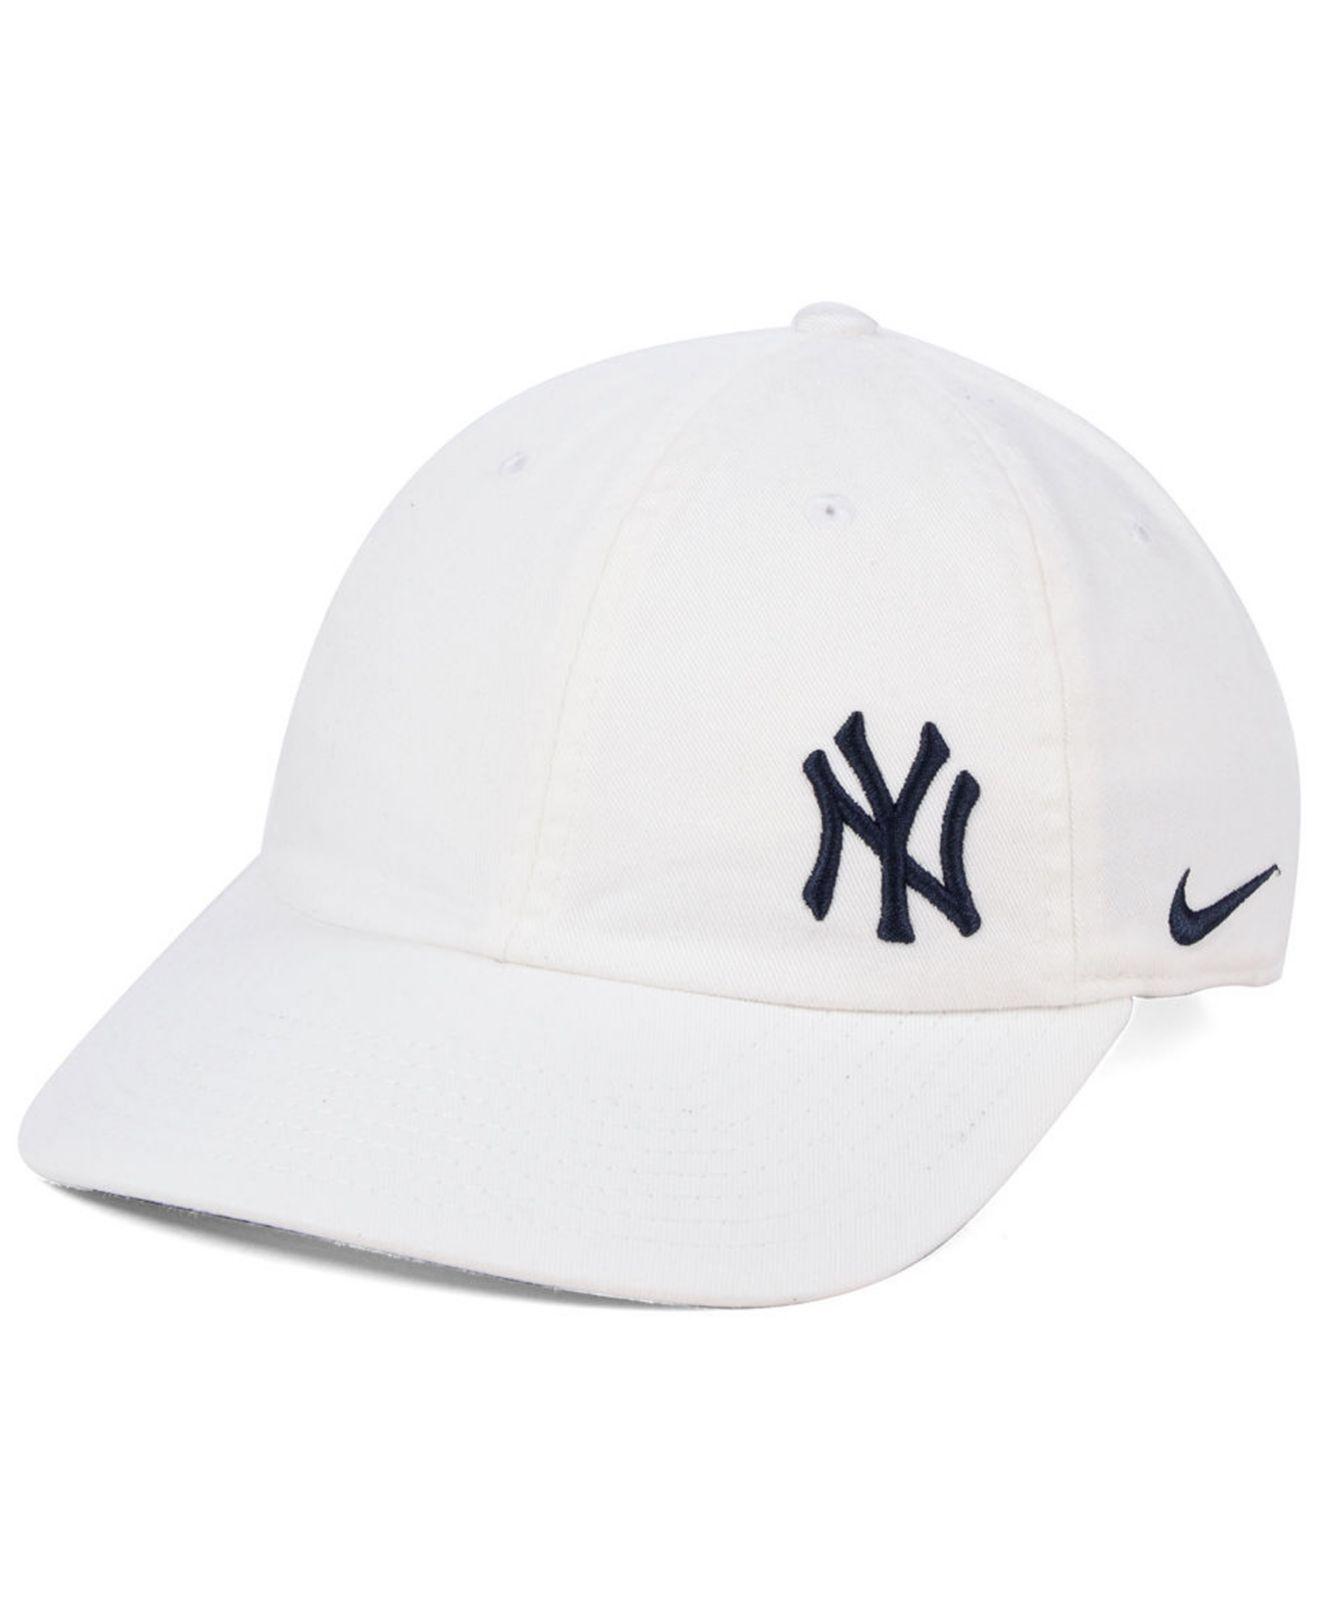 28fa796befb7f Lyst - Nike New York Yankees Offset Adjustable Cap in White